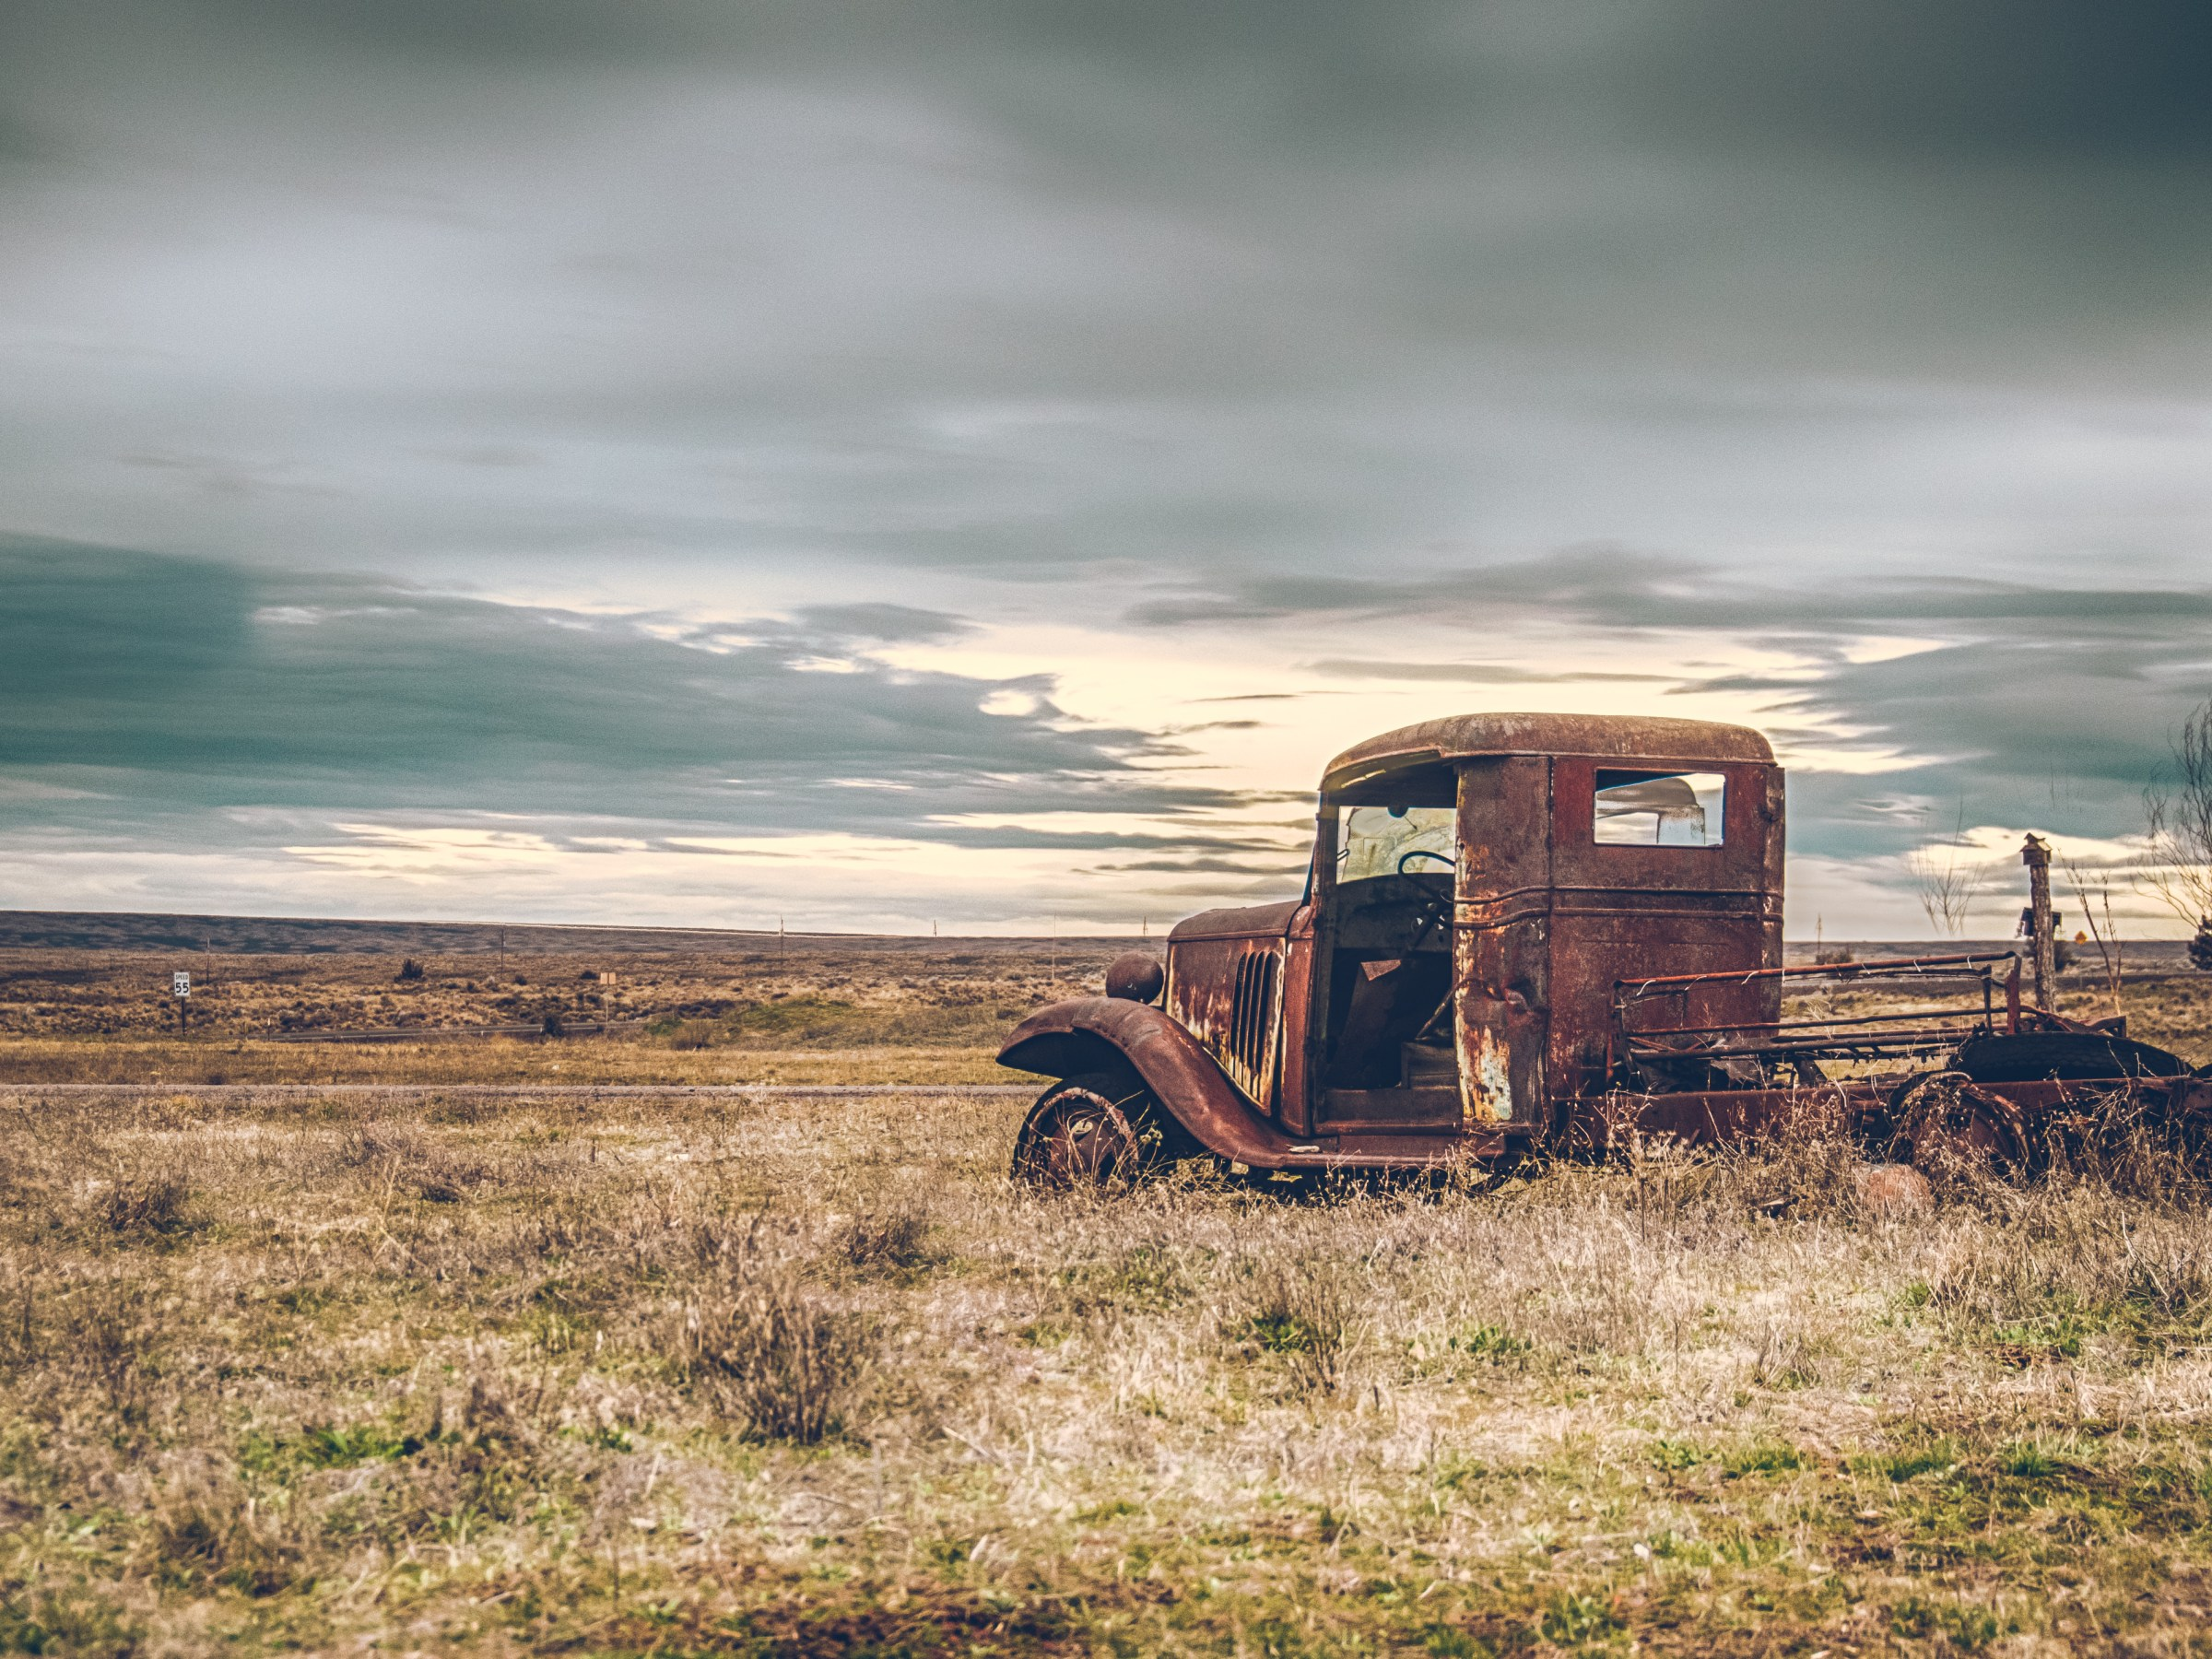 Old car in Shaniko, OR